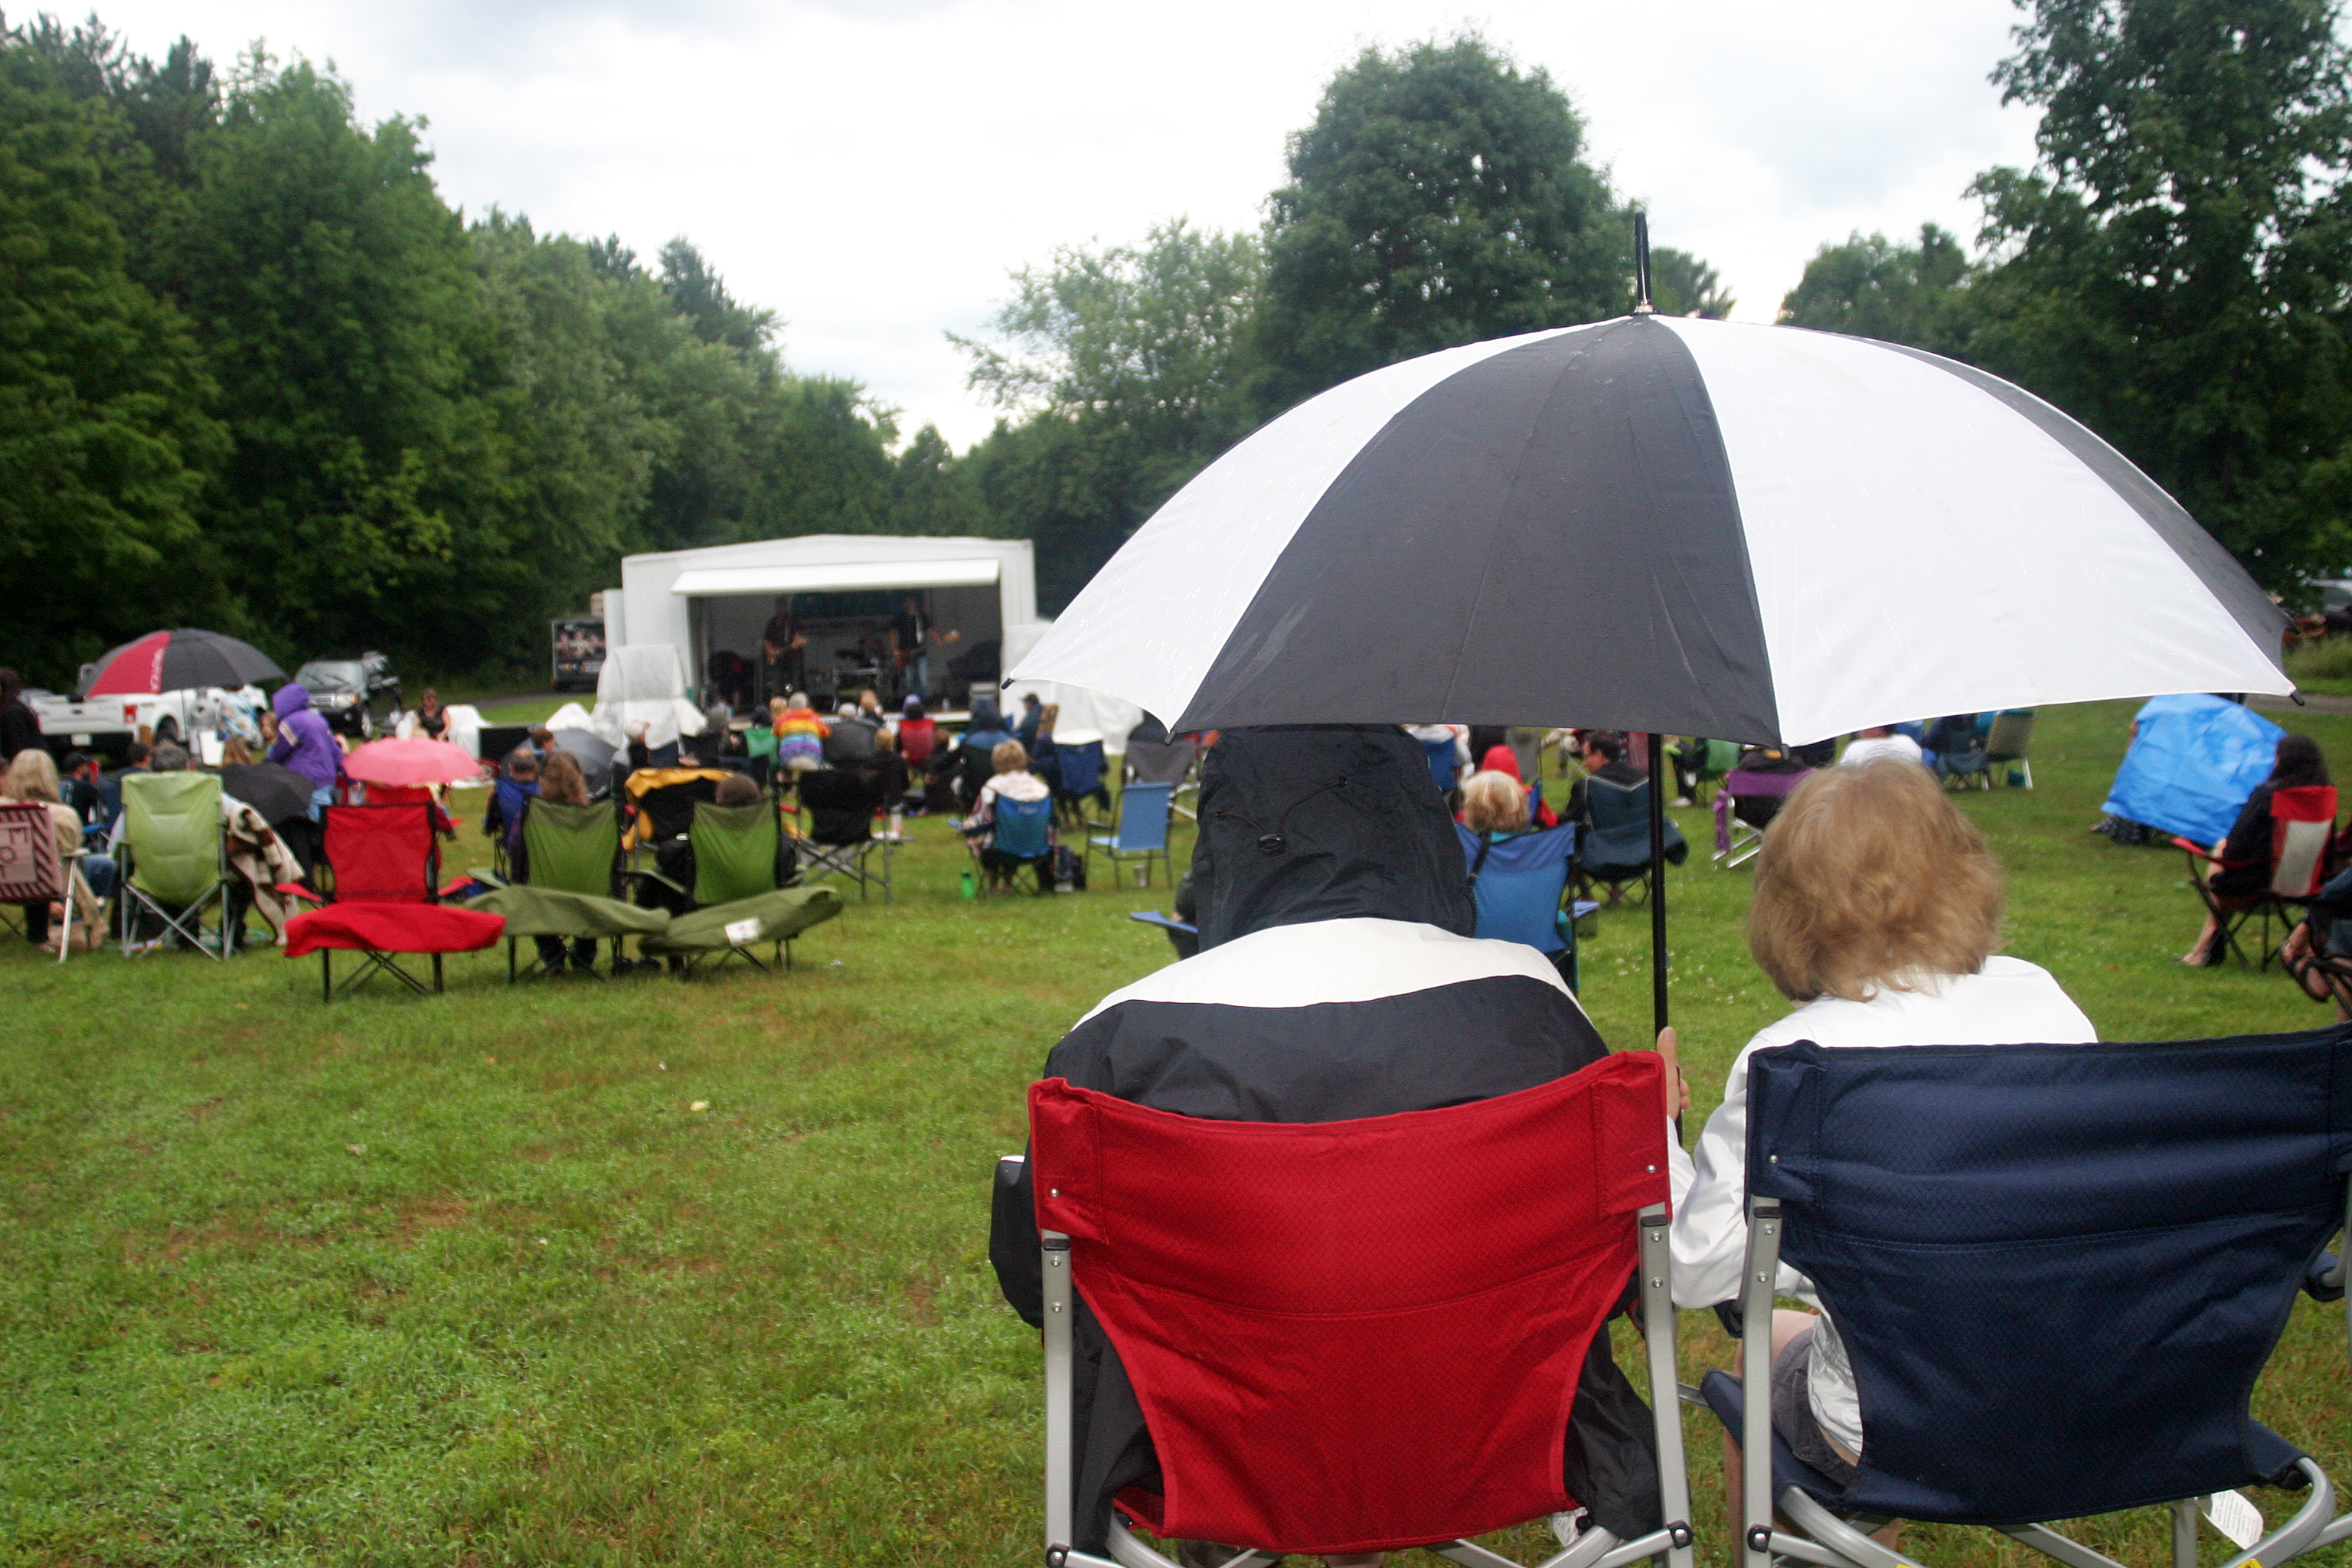 Wet weather didn't stop fans from taking in Ambush at the last Concert in the Park at Fitzroy Provincial Park. Photo by Jake Davies